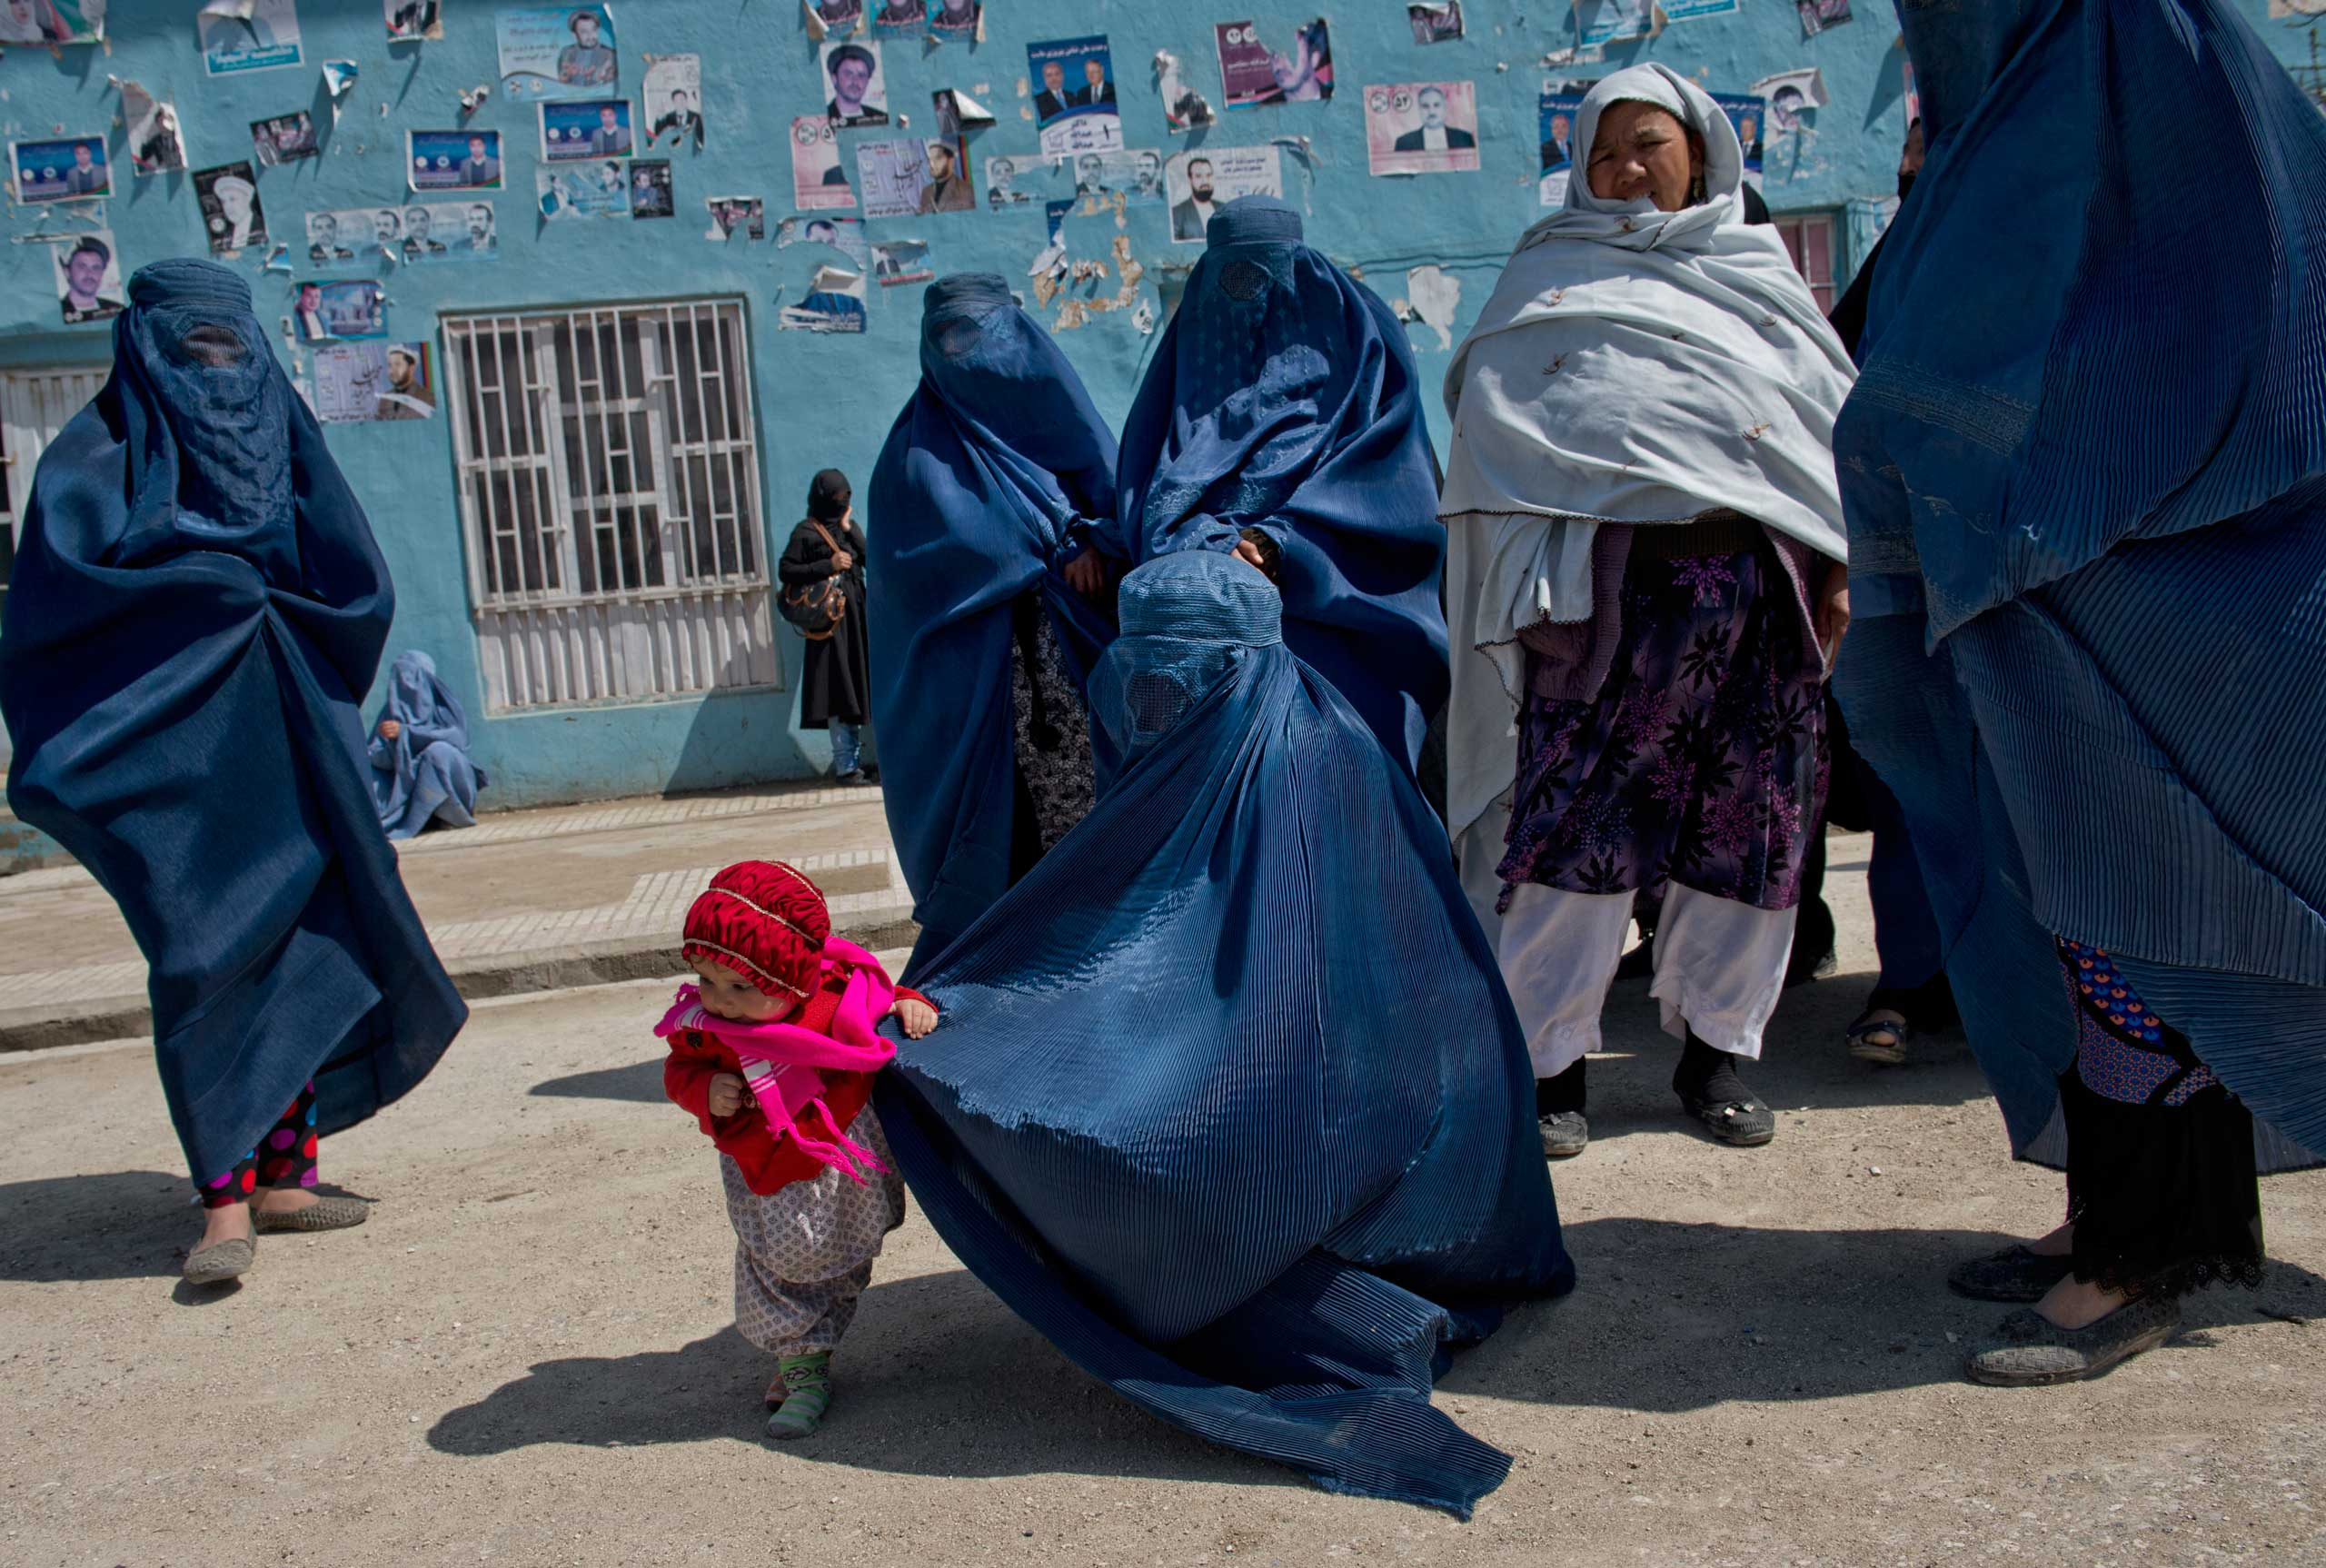 March 27, 2014. Afghan women leave a rally for presidential hopeful Zalmai Rassoul. From  And Women Shall Lead: Lynsey Addario on the New Face of Afghanistan